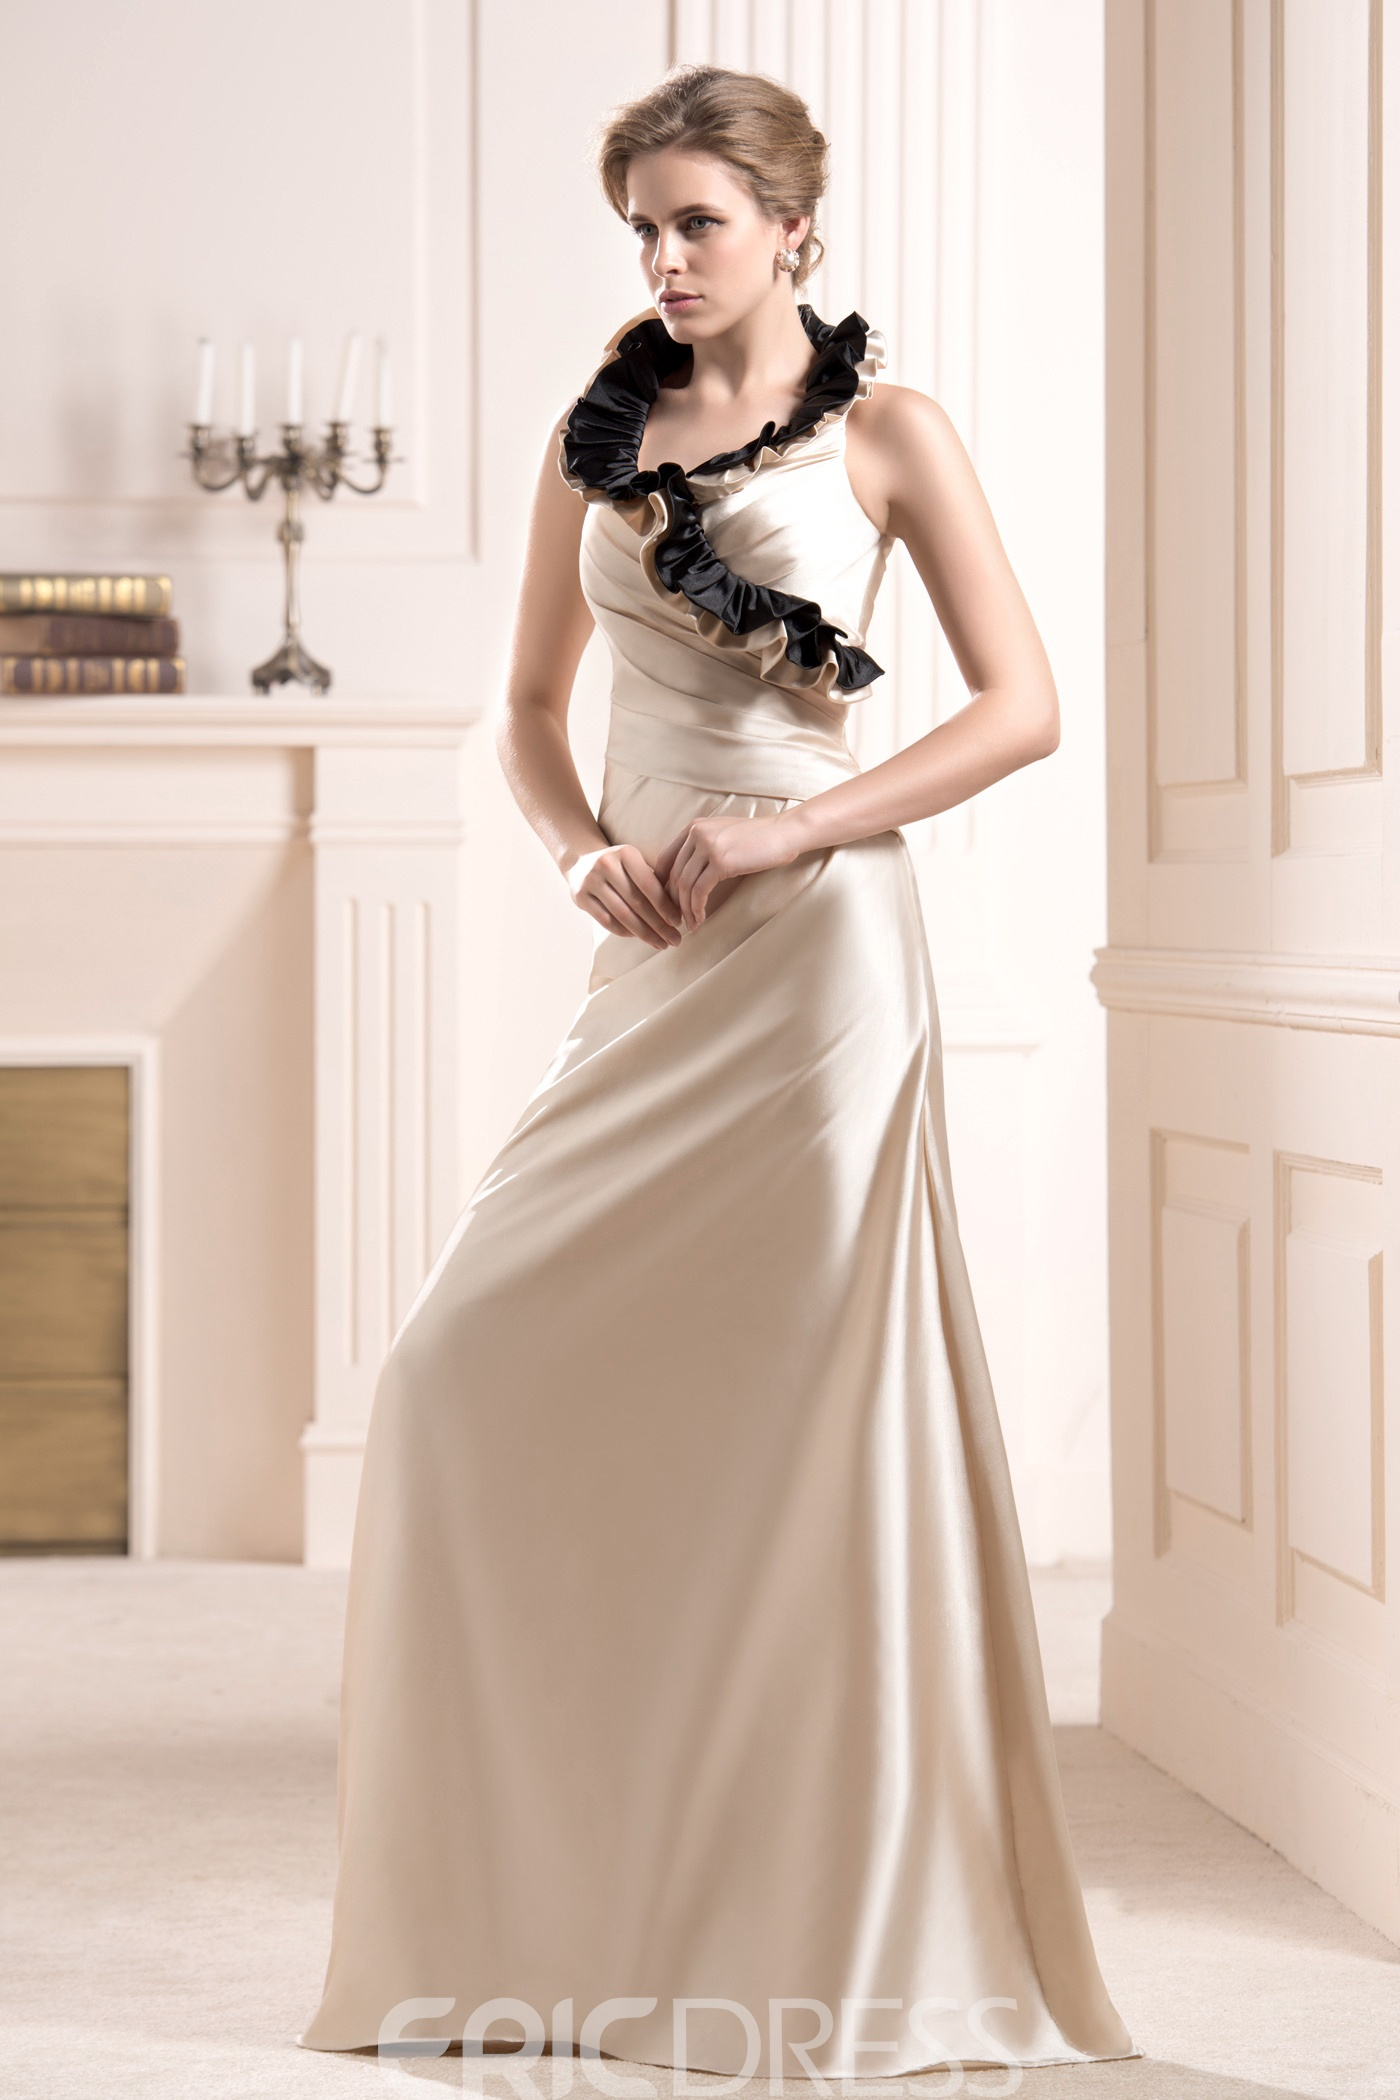 Fantastic Ruffles Sheath Sleeveless Floor-Length Mother of the Bride Dress With Jacket/Shawl